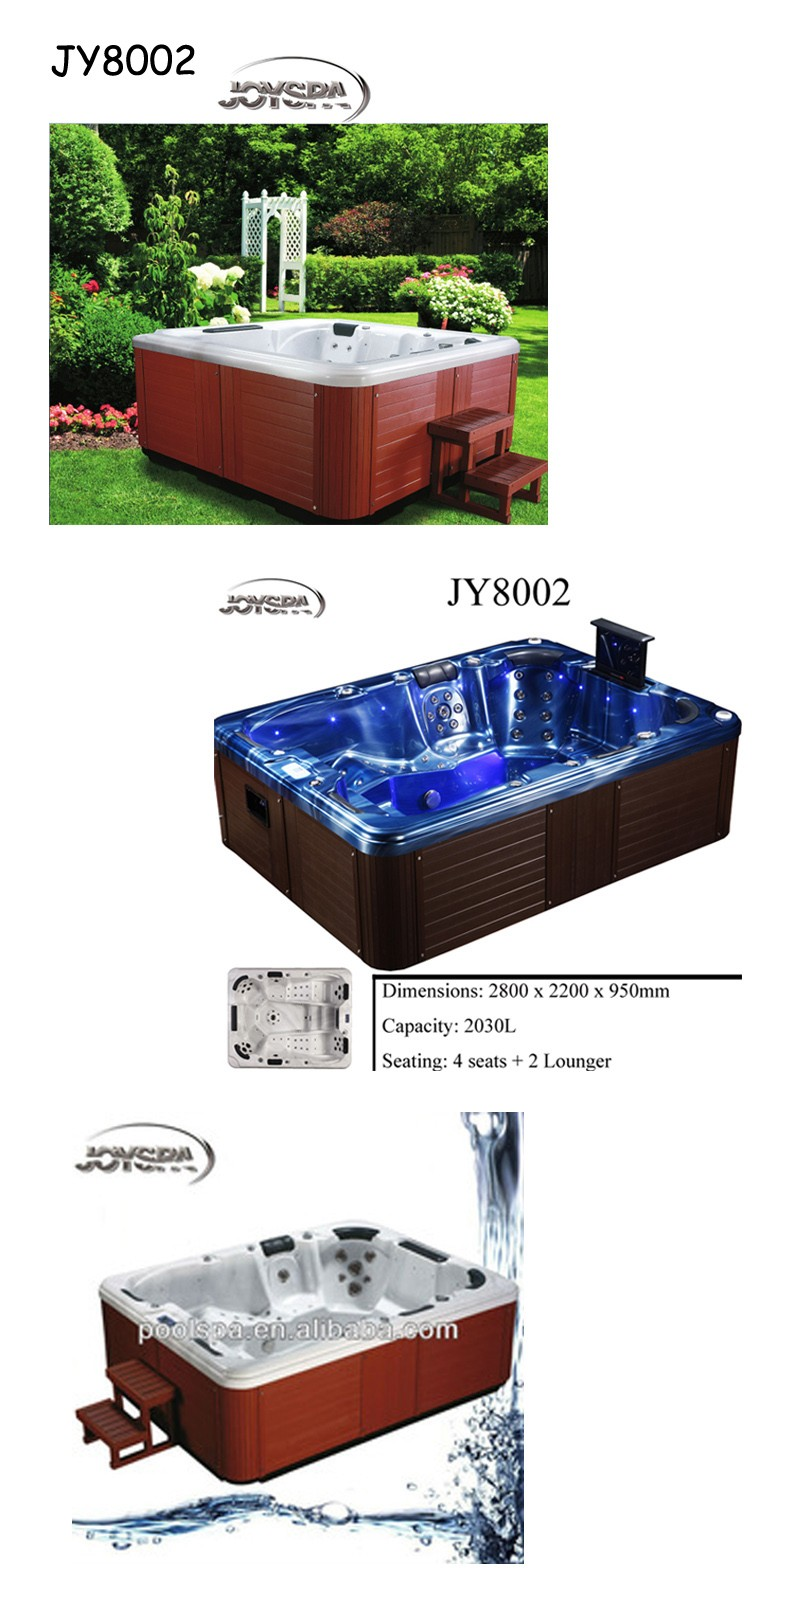 joyspa 6 person whirlpool bathtub outdoor whirlpool with. Black Bedroom Furniture Sets. Home Design Ideas